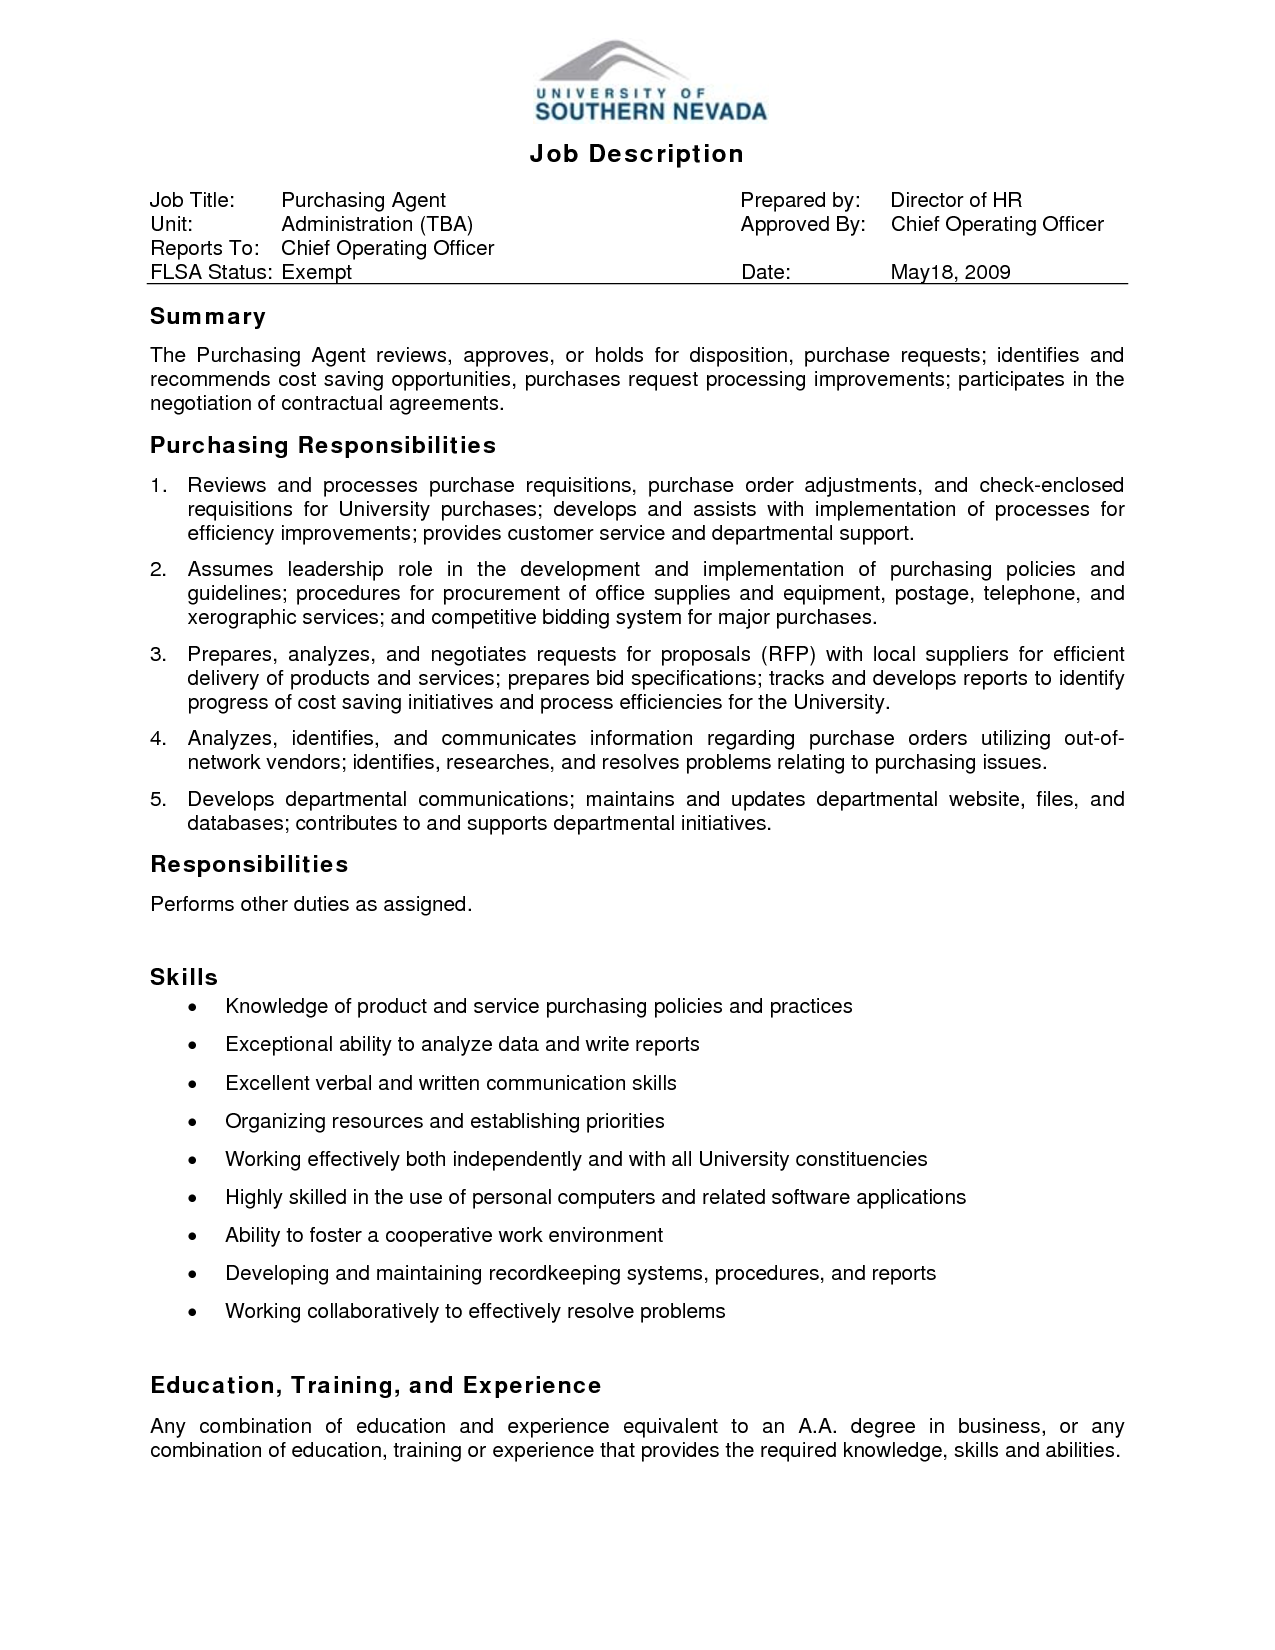 administrative assistant duties cover letter job